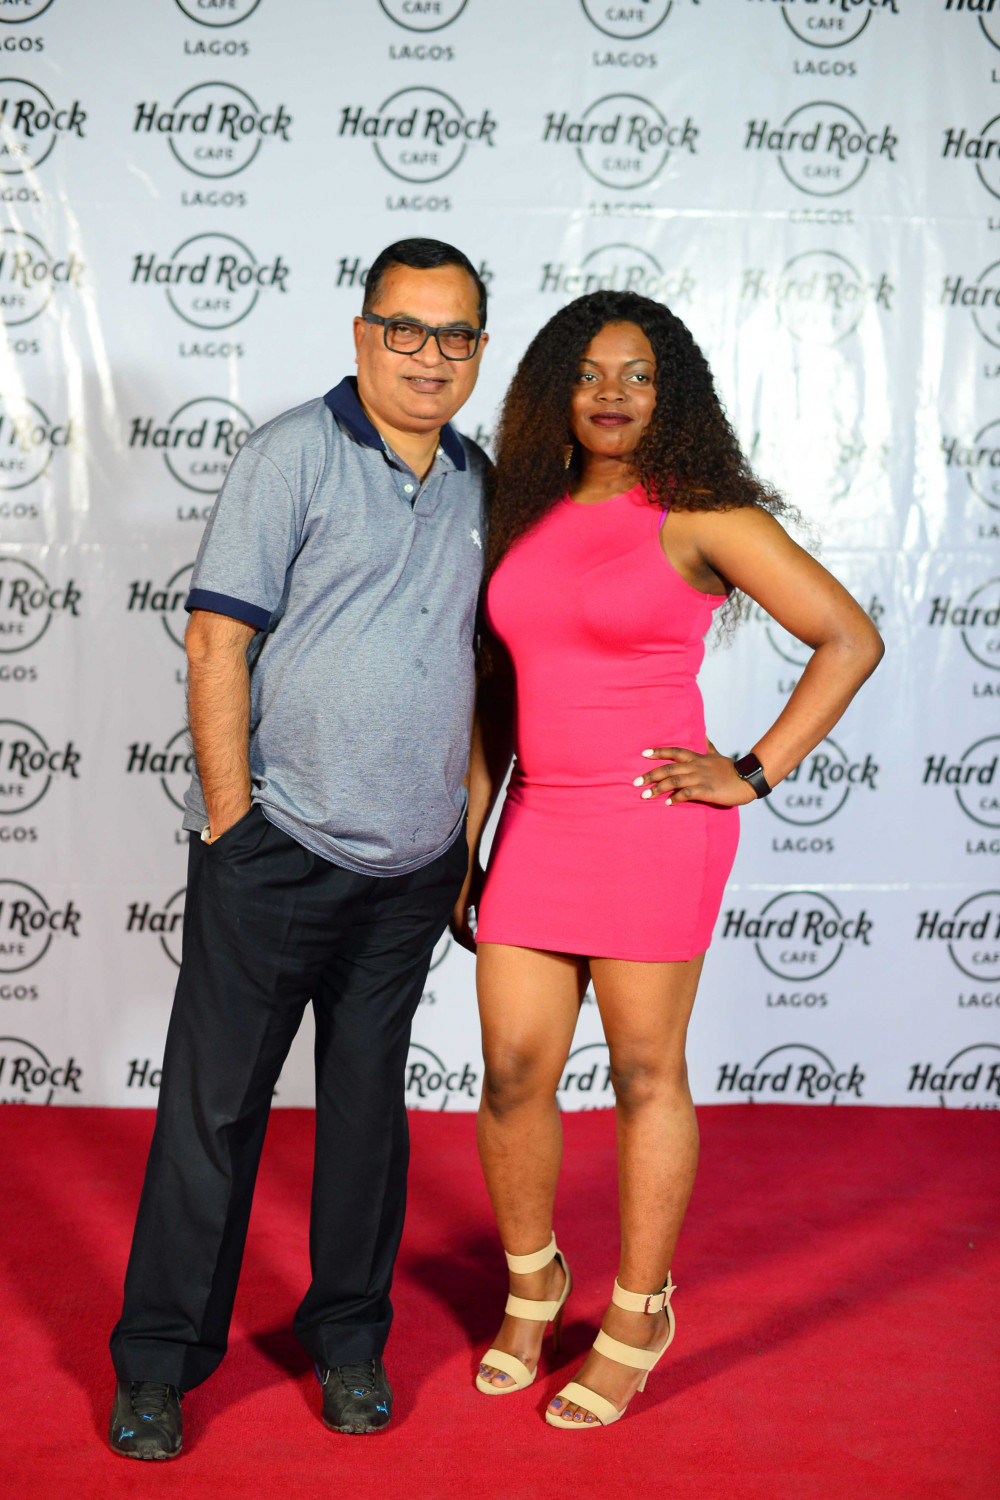 Hard Rock Cafe Lagos Launch BellaNaija Red Carpet